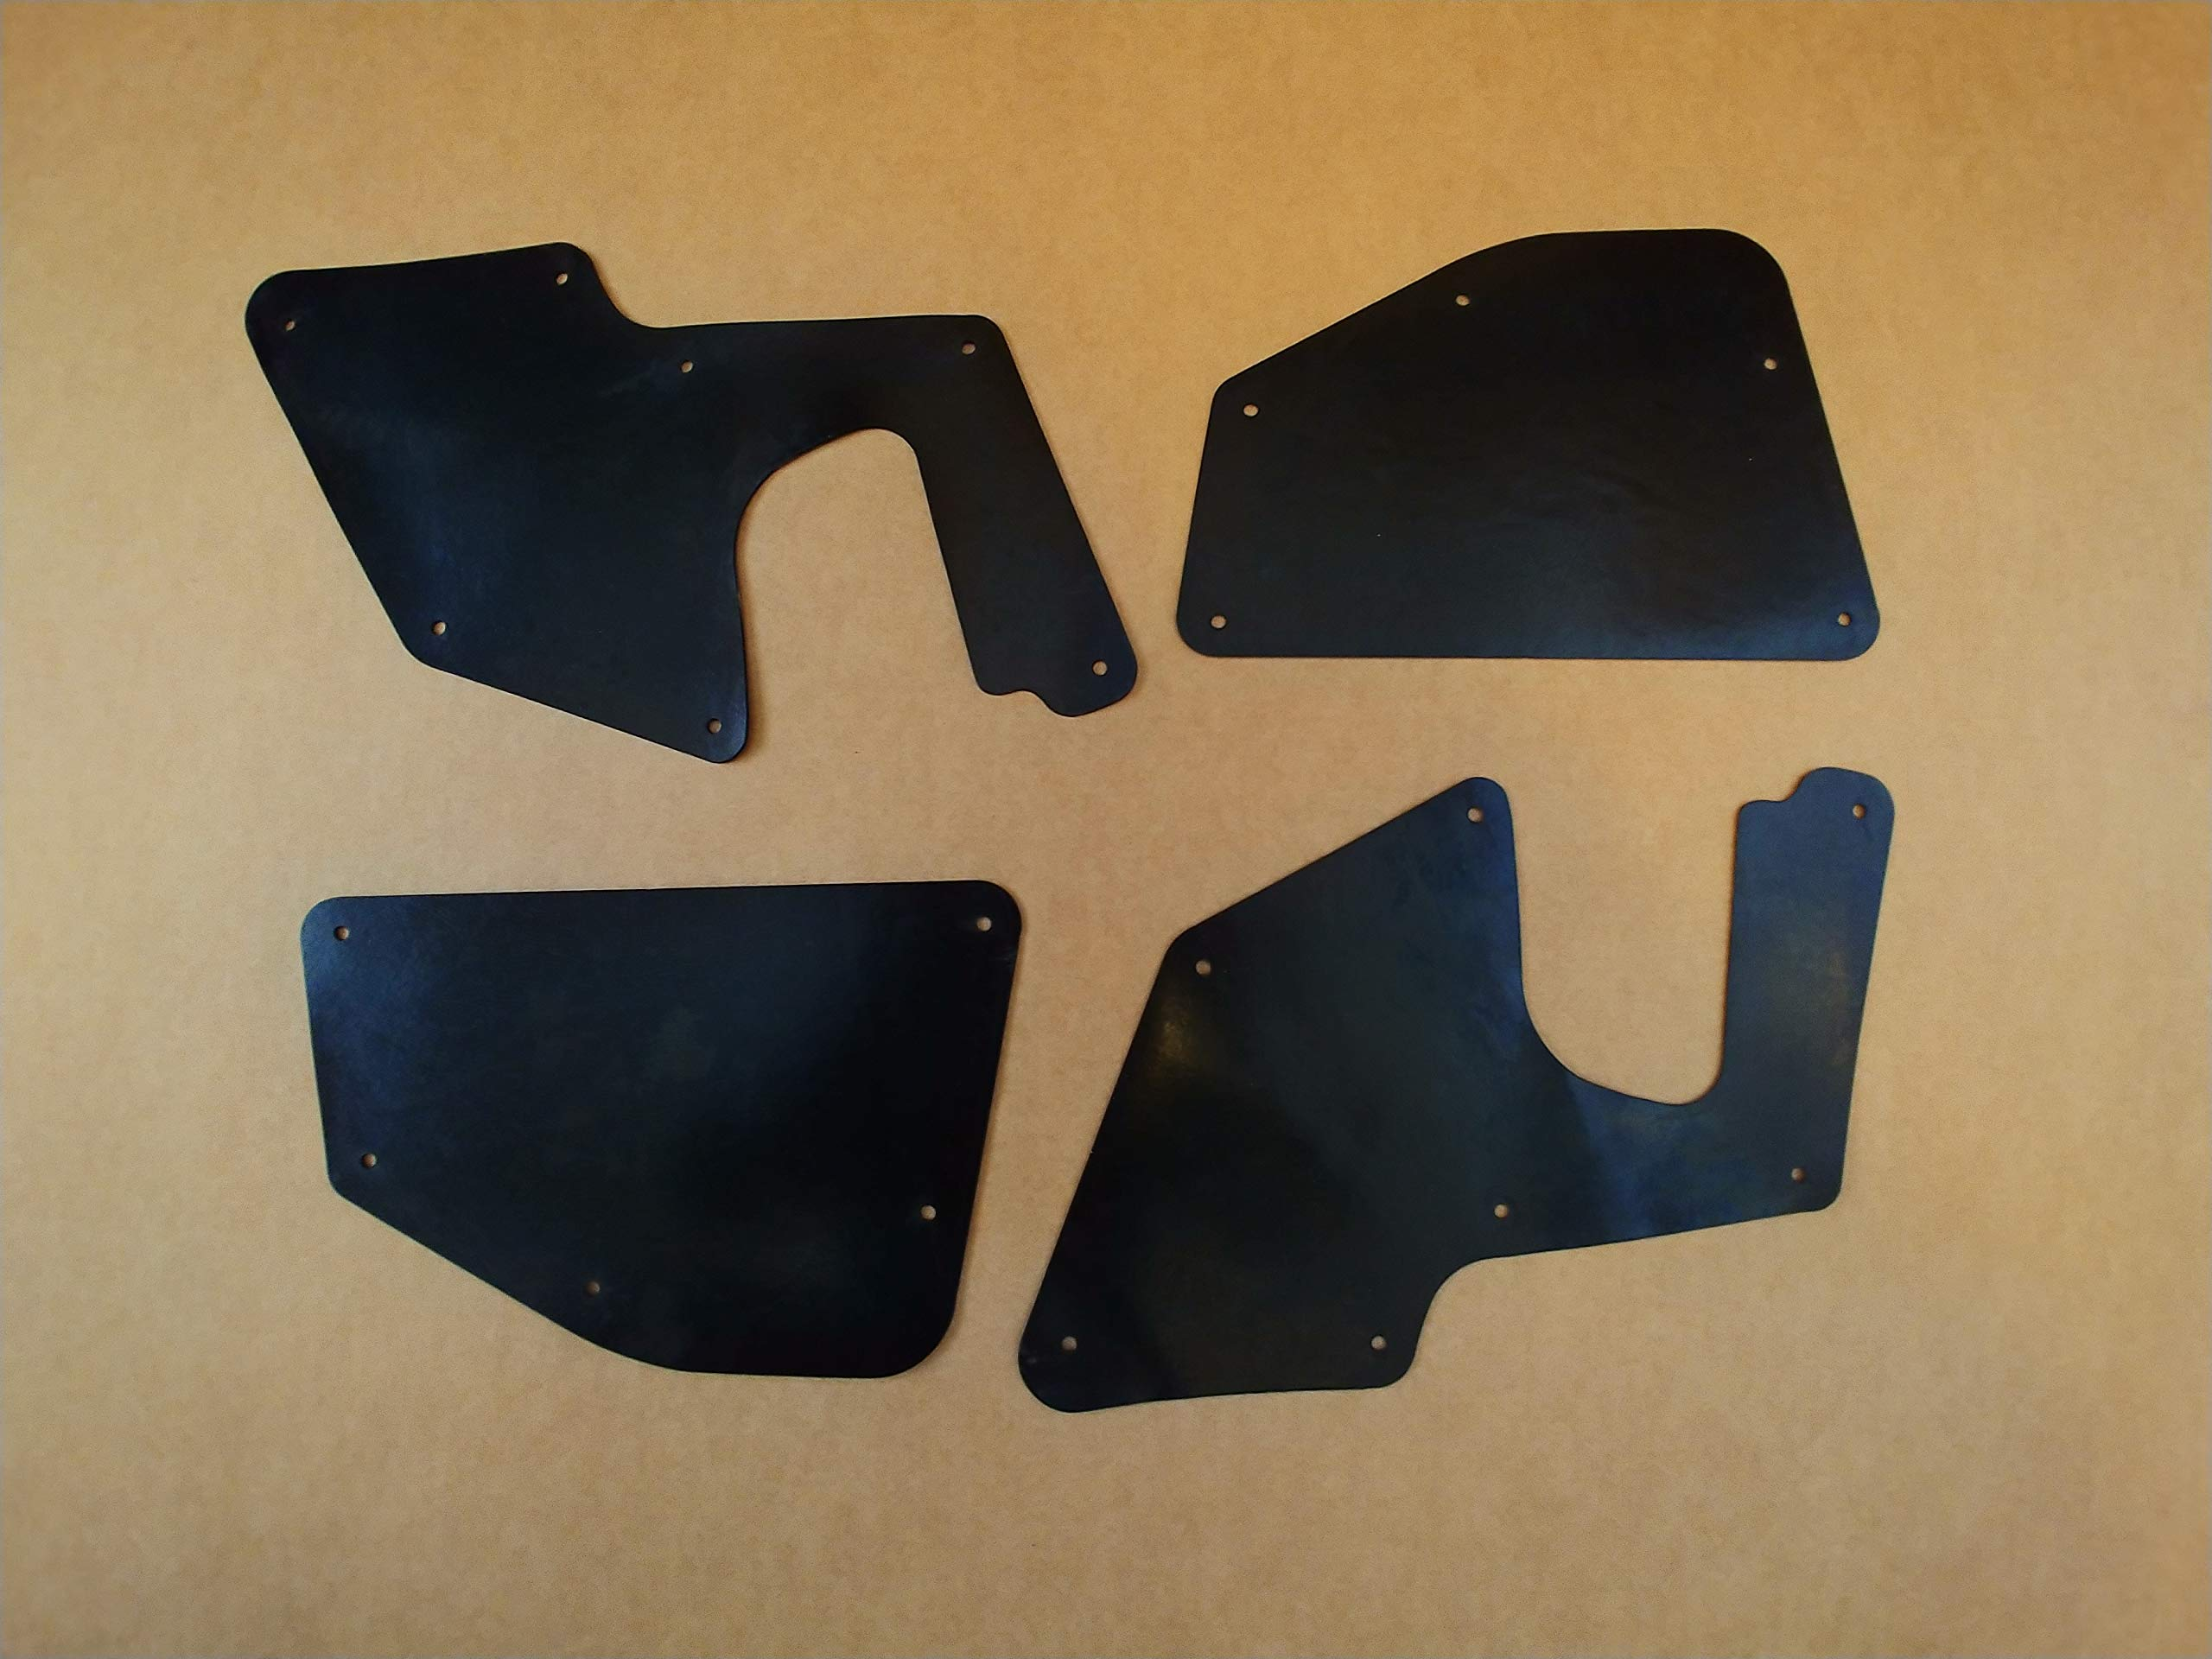 Set of Four Splash Shields with Clips for 1996-2002 Toyota 4Runner (Fender Liners, Aprons, Shields, Splash Guards, Skirts, Guards, Seals, Splash Seals) R by Yota Liners (Image #1)